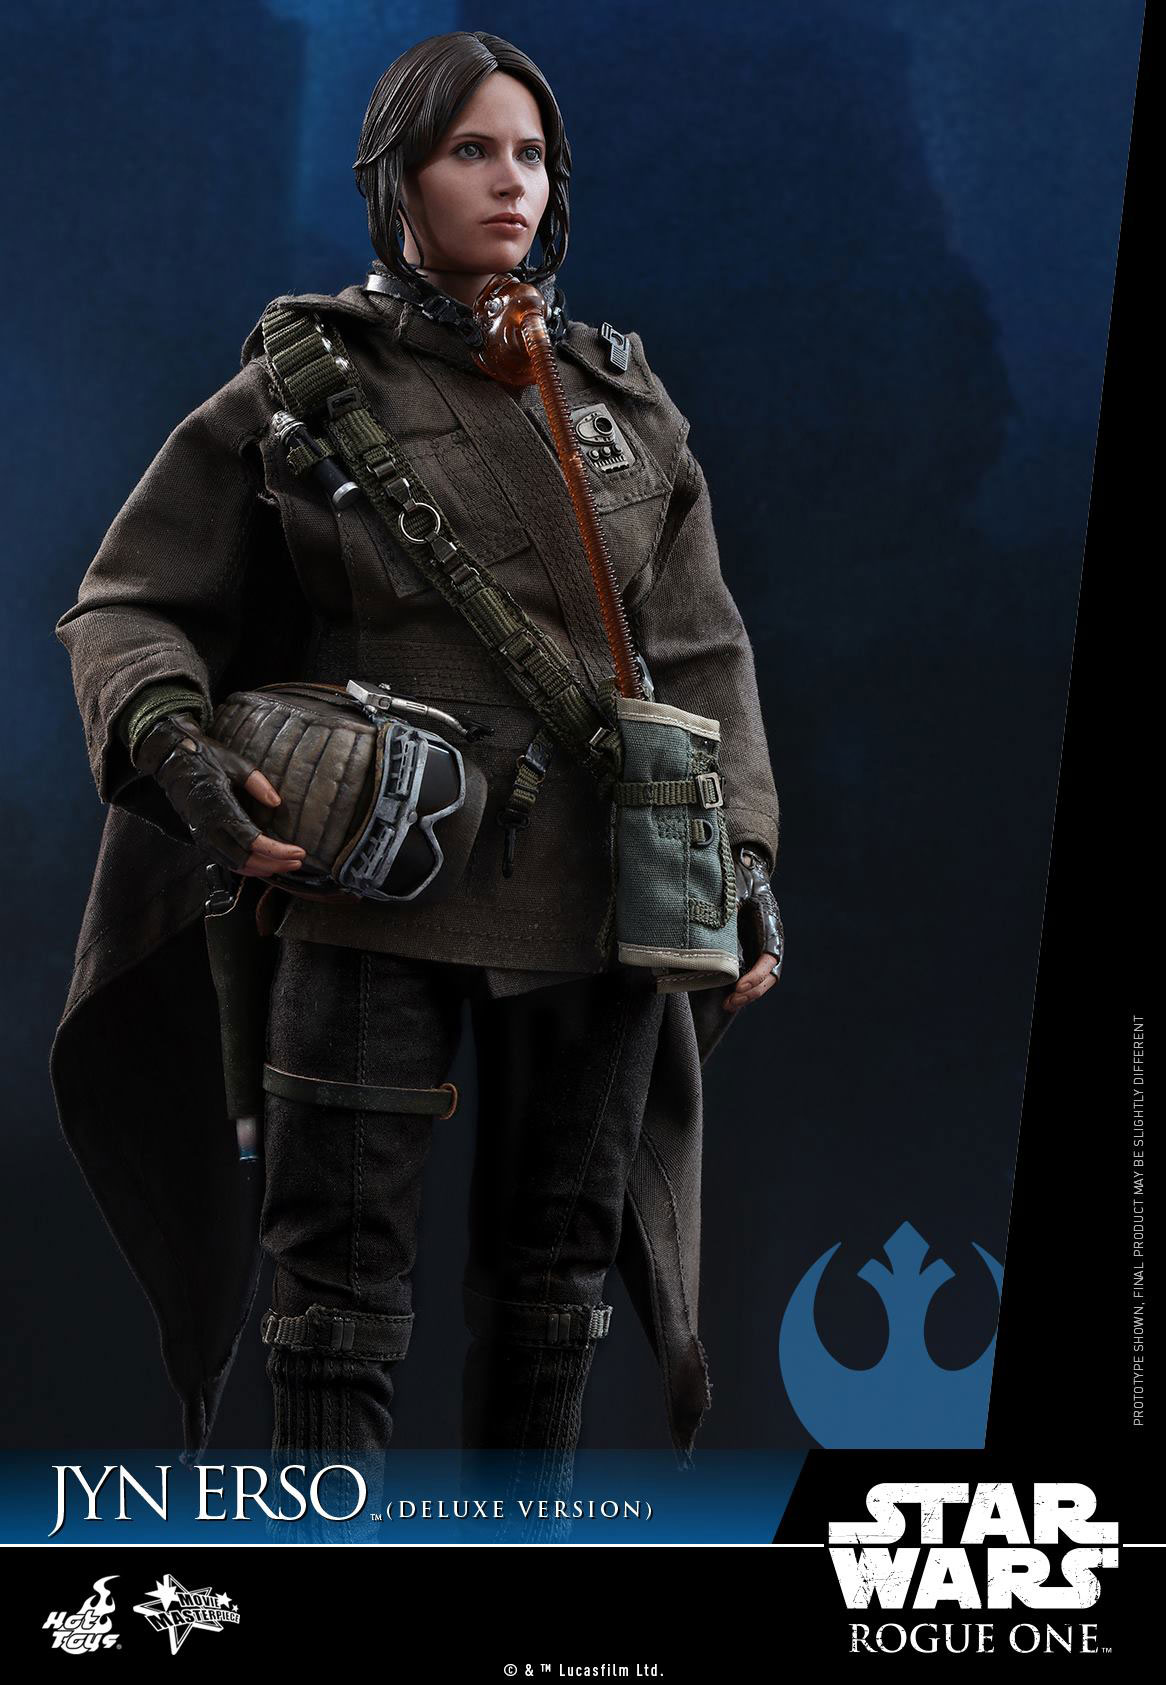 hot-toys-star-wars-rogue-one-figure-deluxe-version-6